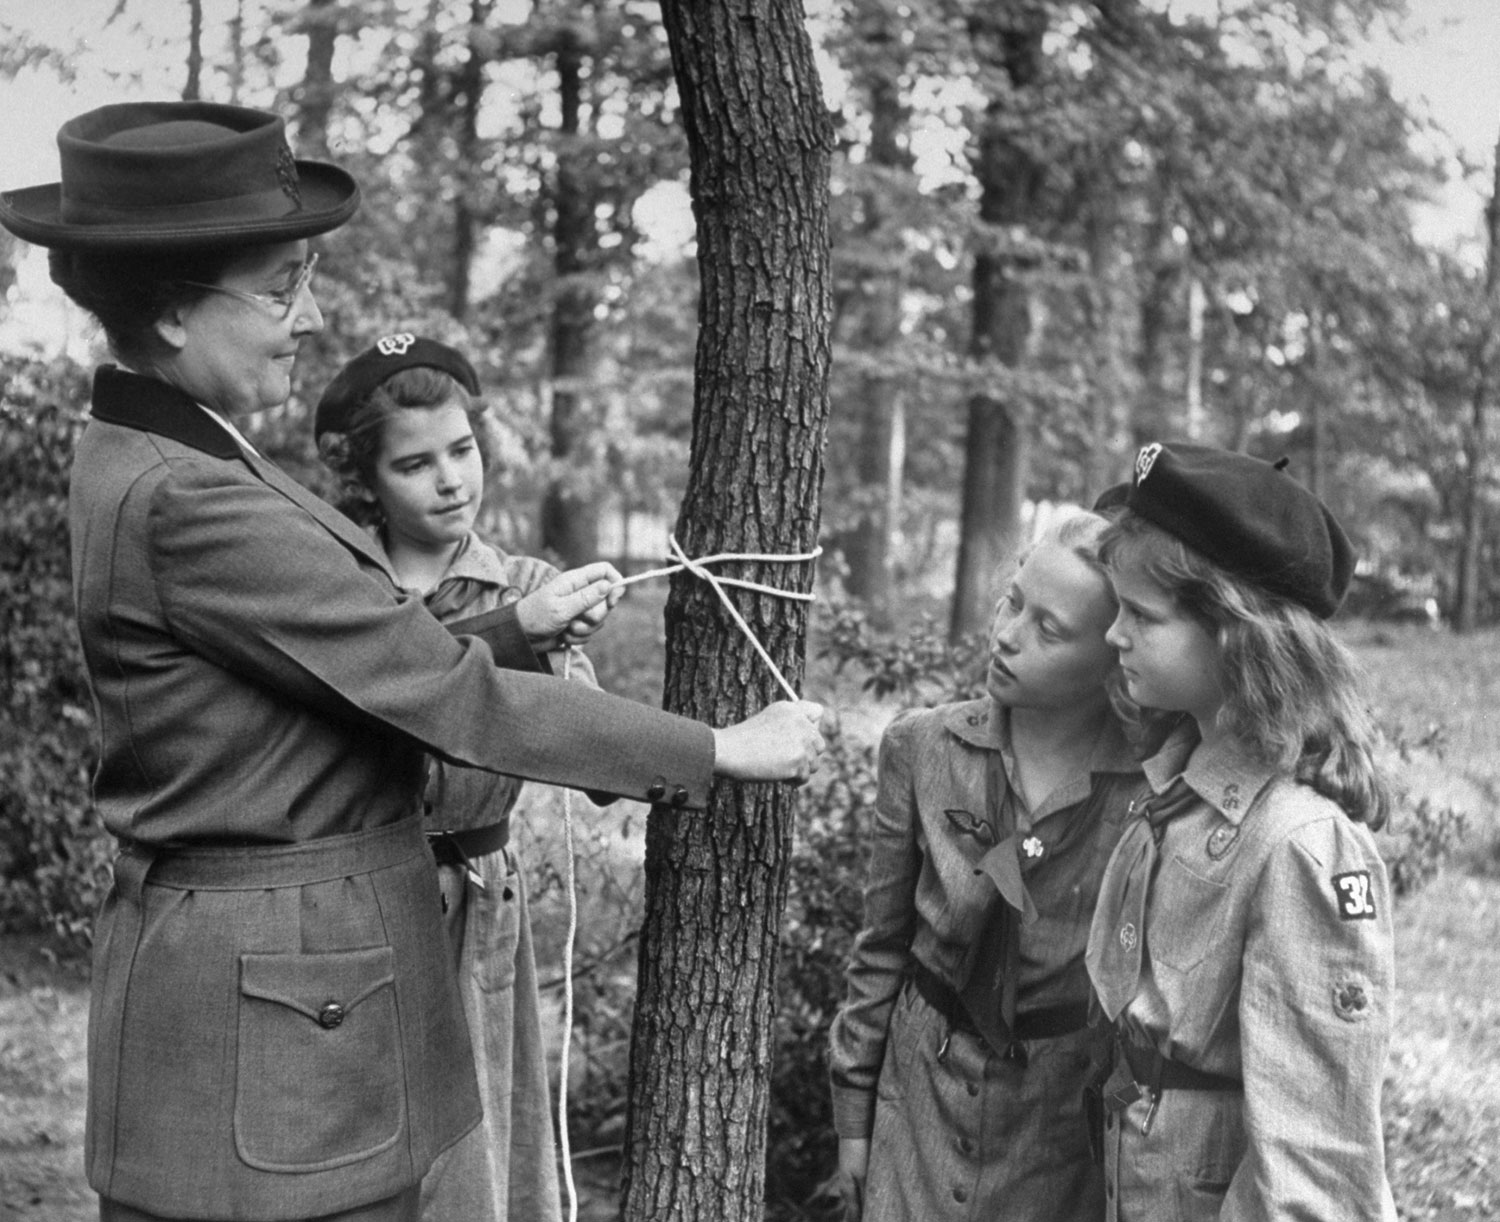 <b>Caption from LIFE.</b> Tying knot, she makes clove hitch on a tree. Modern scouts do less knotting and woodcraft, concentrate more on homemaking and hospital work.